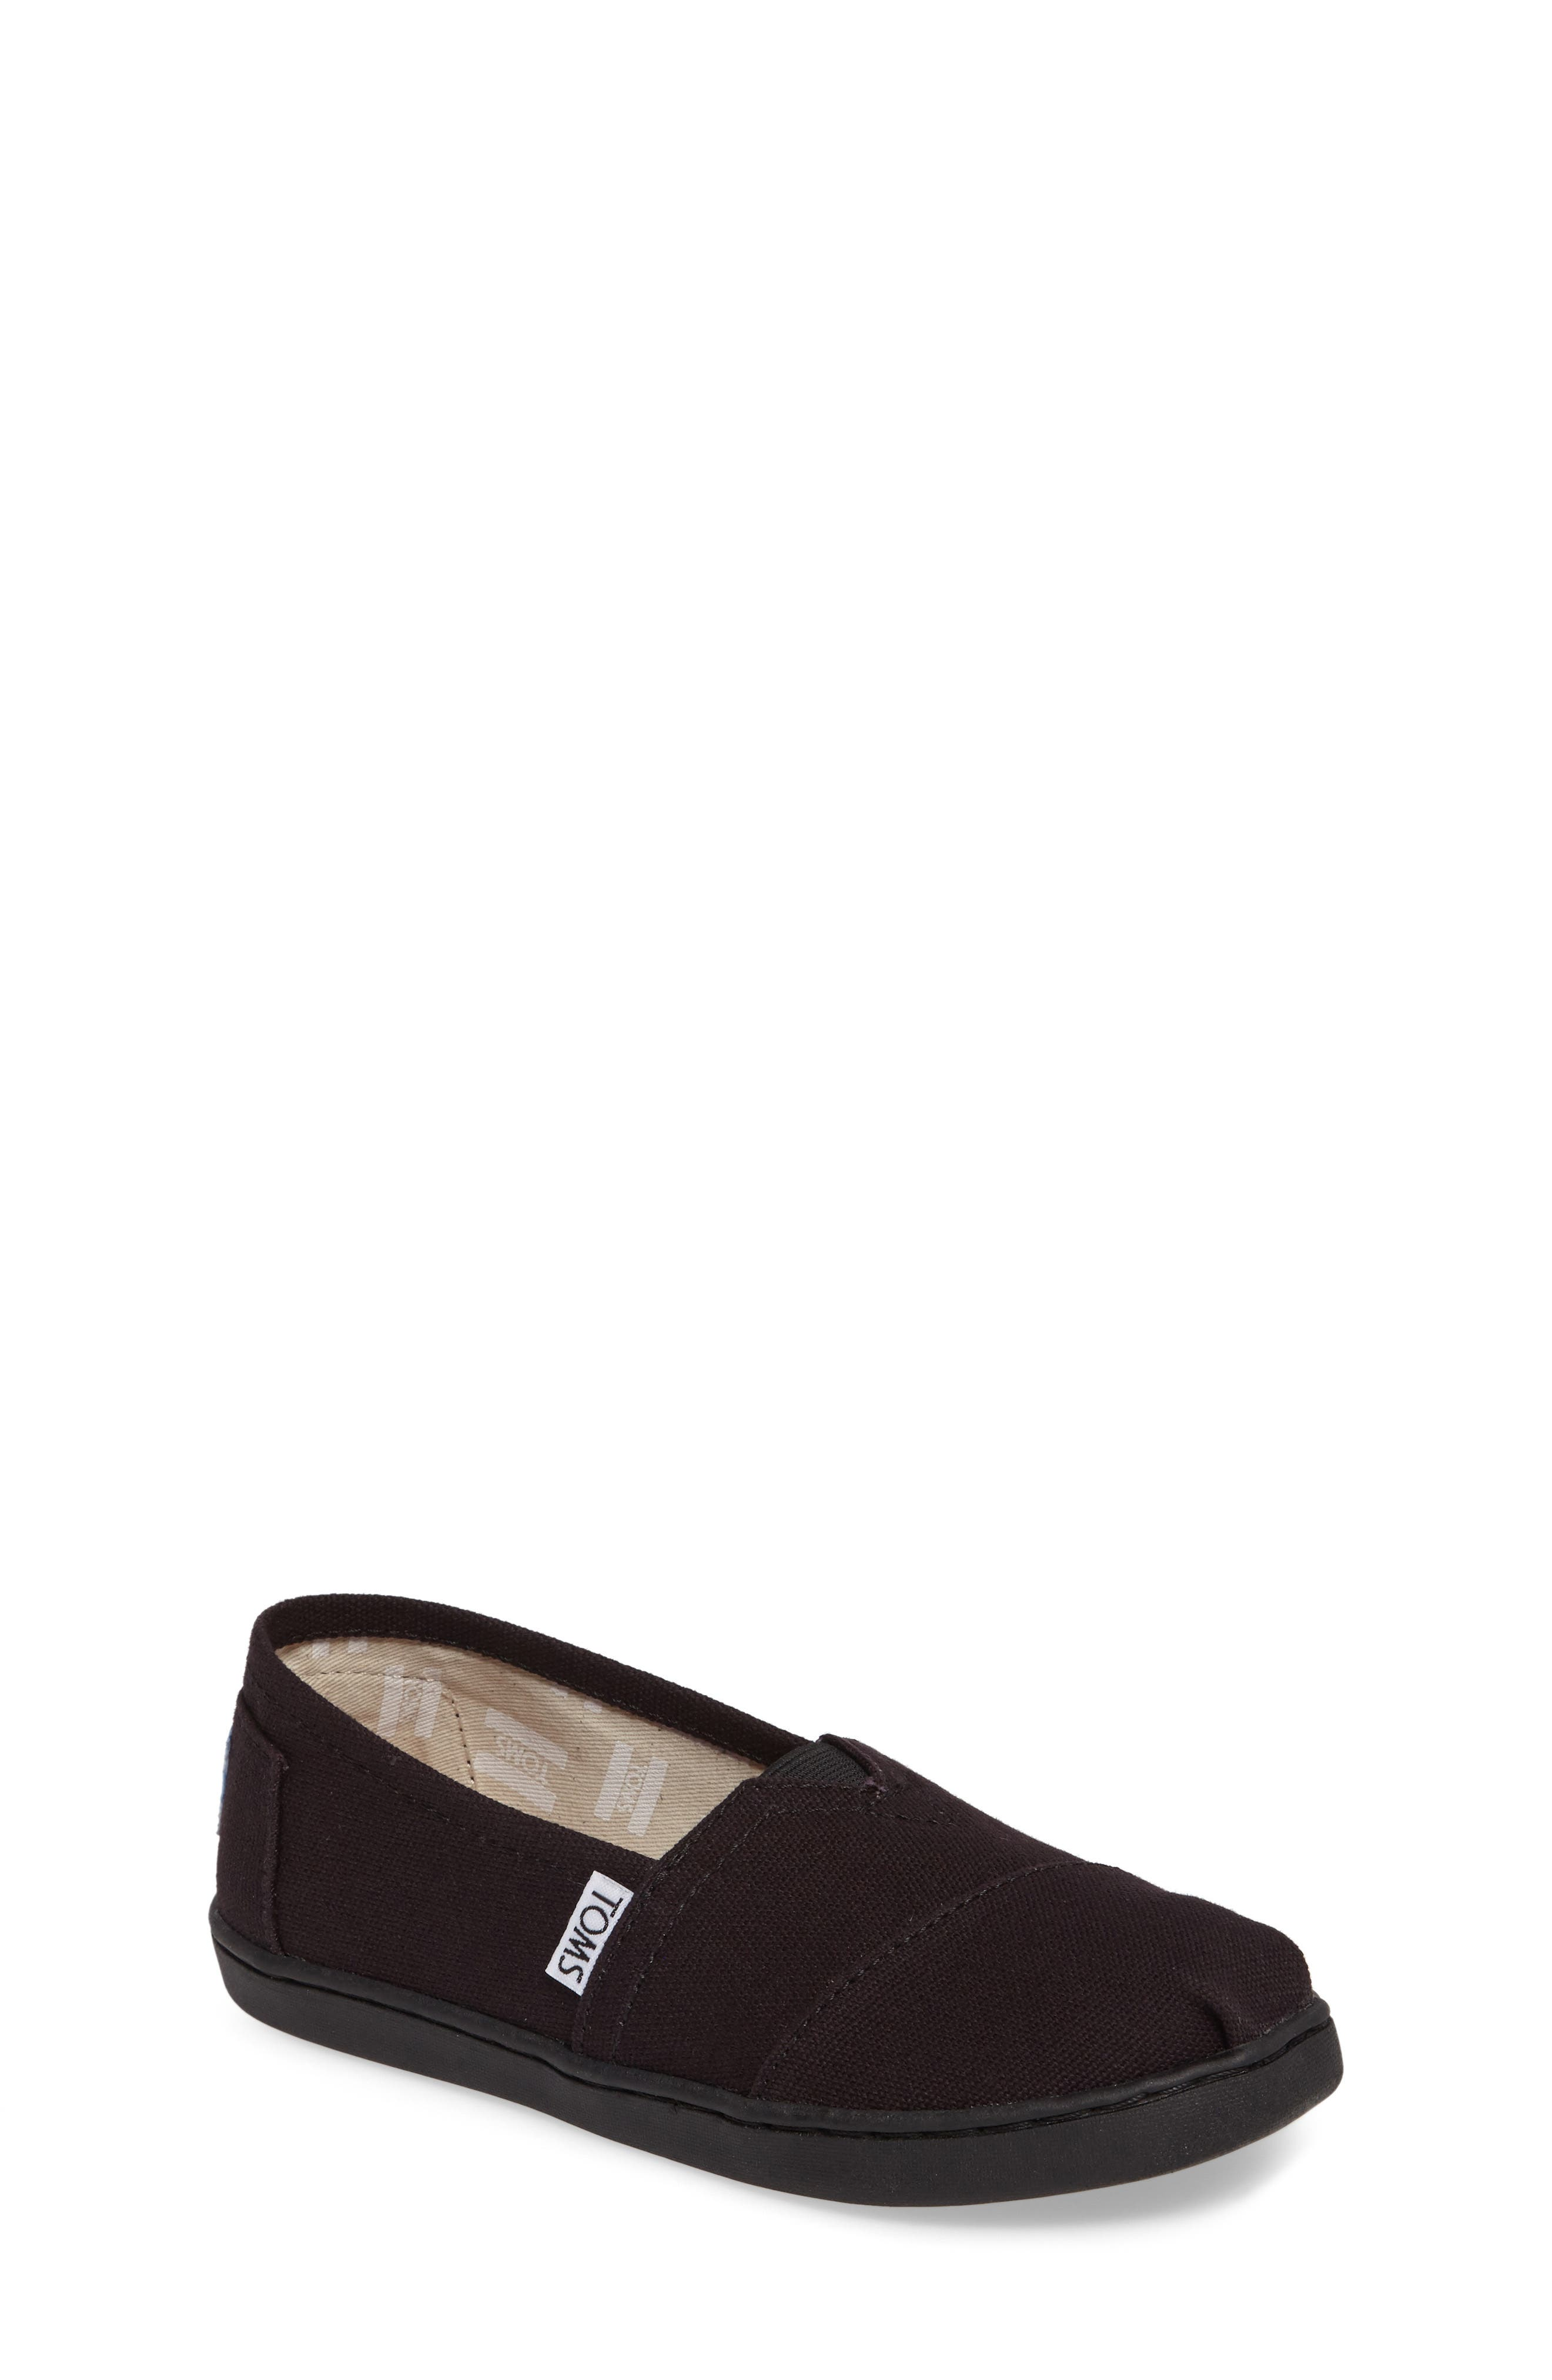 2.0 Classic Alpargata Slip-On,                             Main thumbnail 1, color,                             Black Canvas